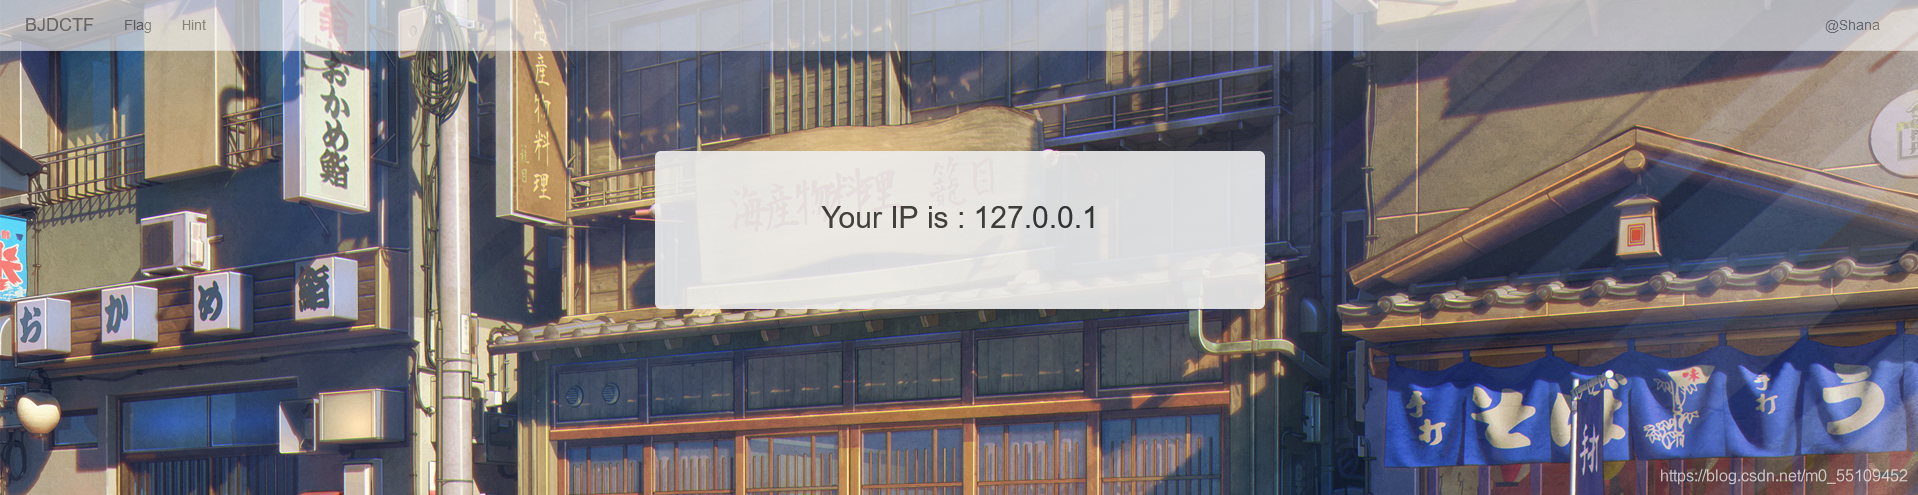 The mystery of ip